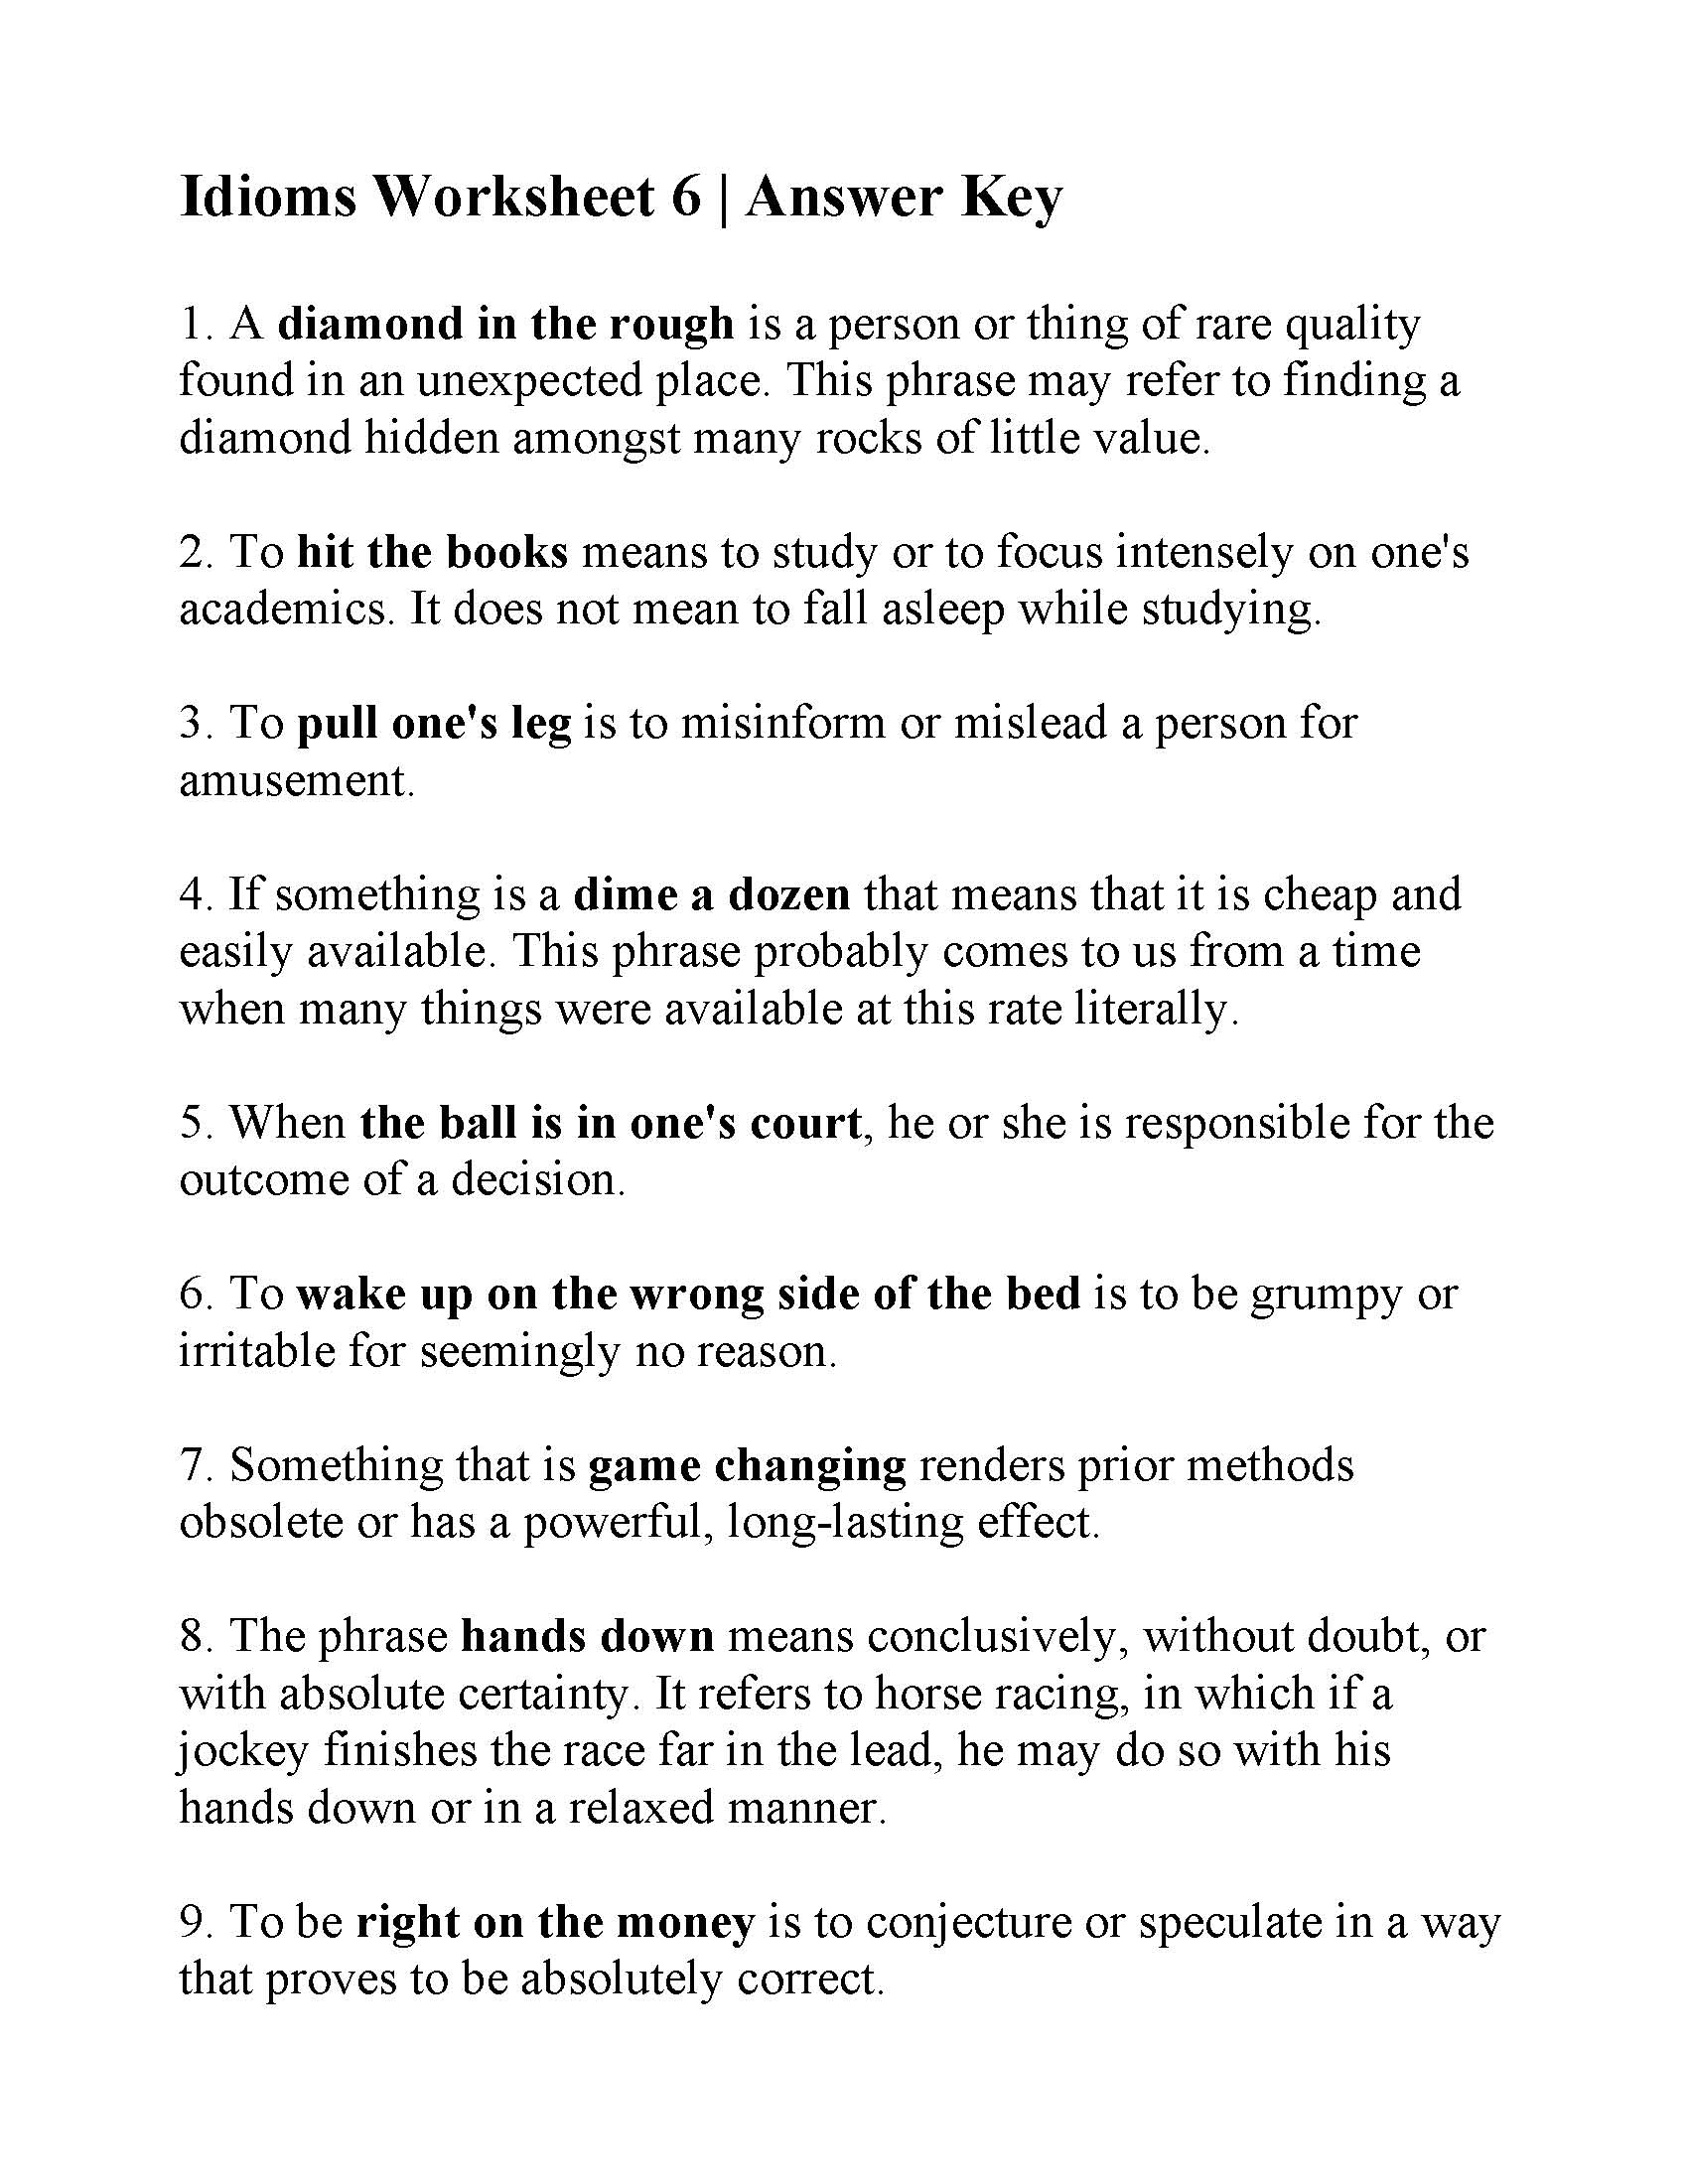 Idioms Worksheet 6 | Answers